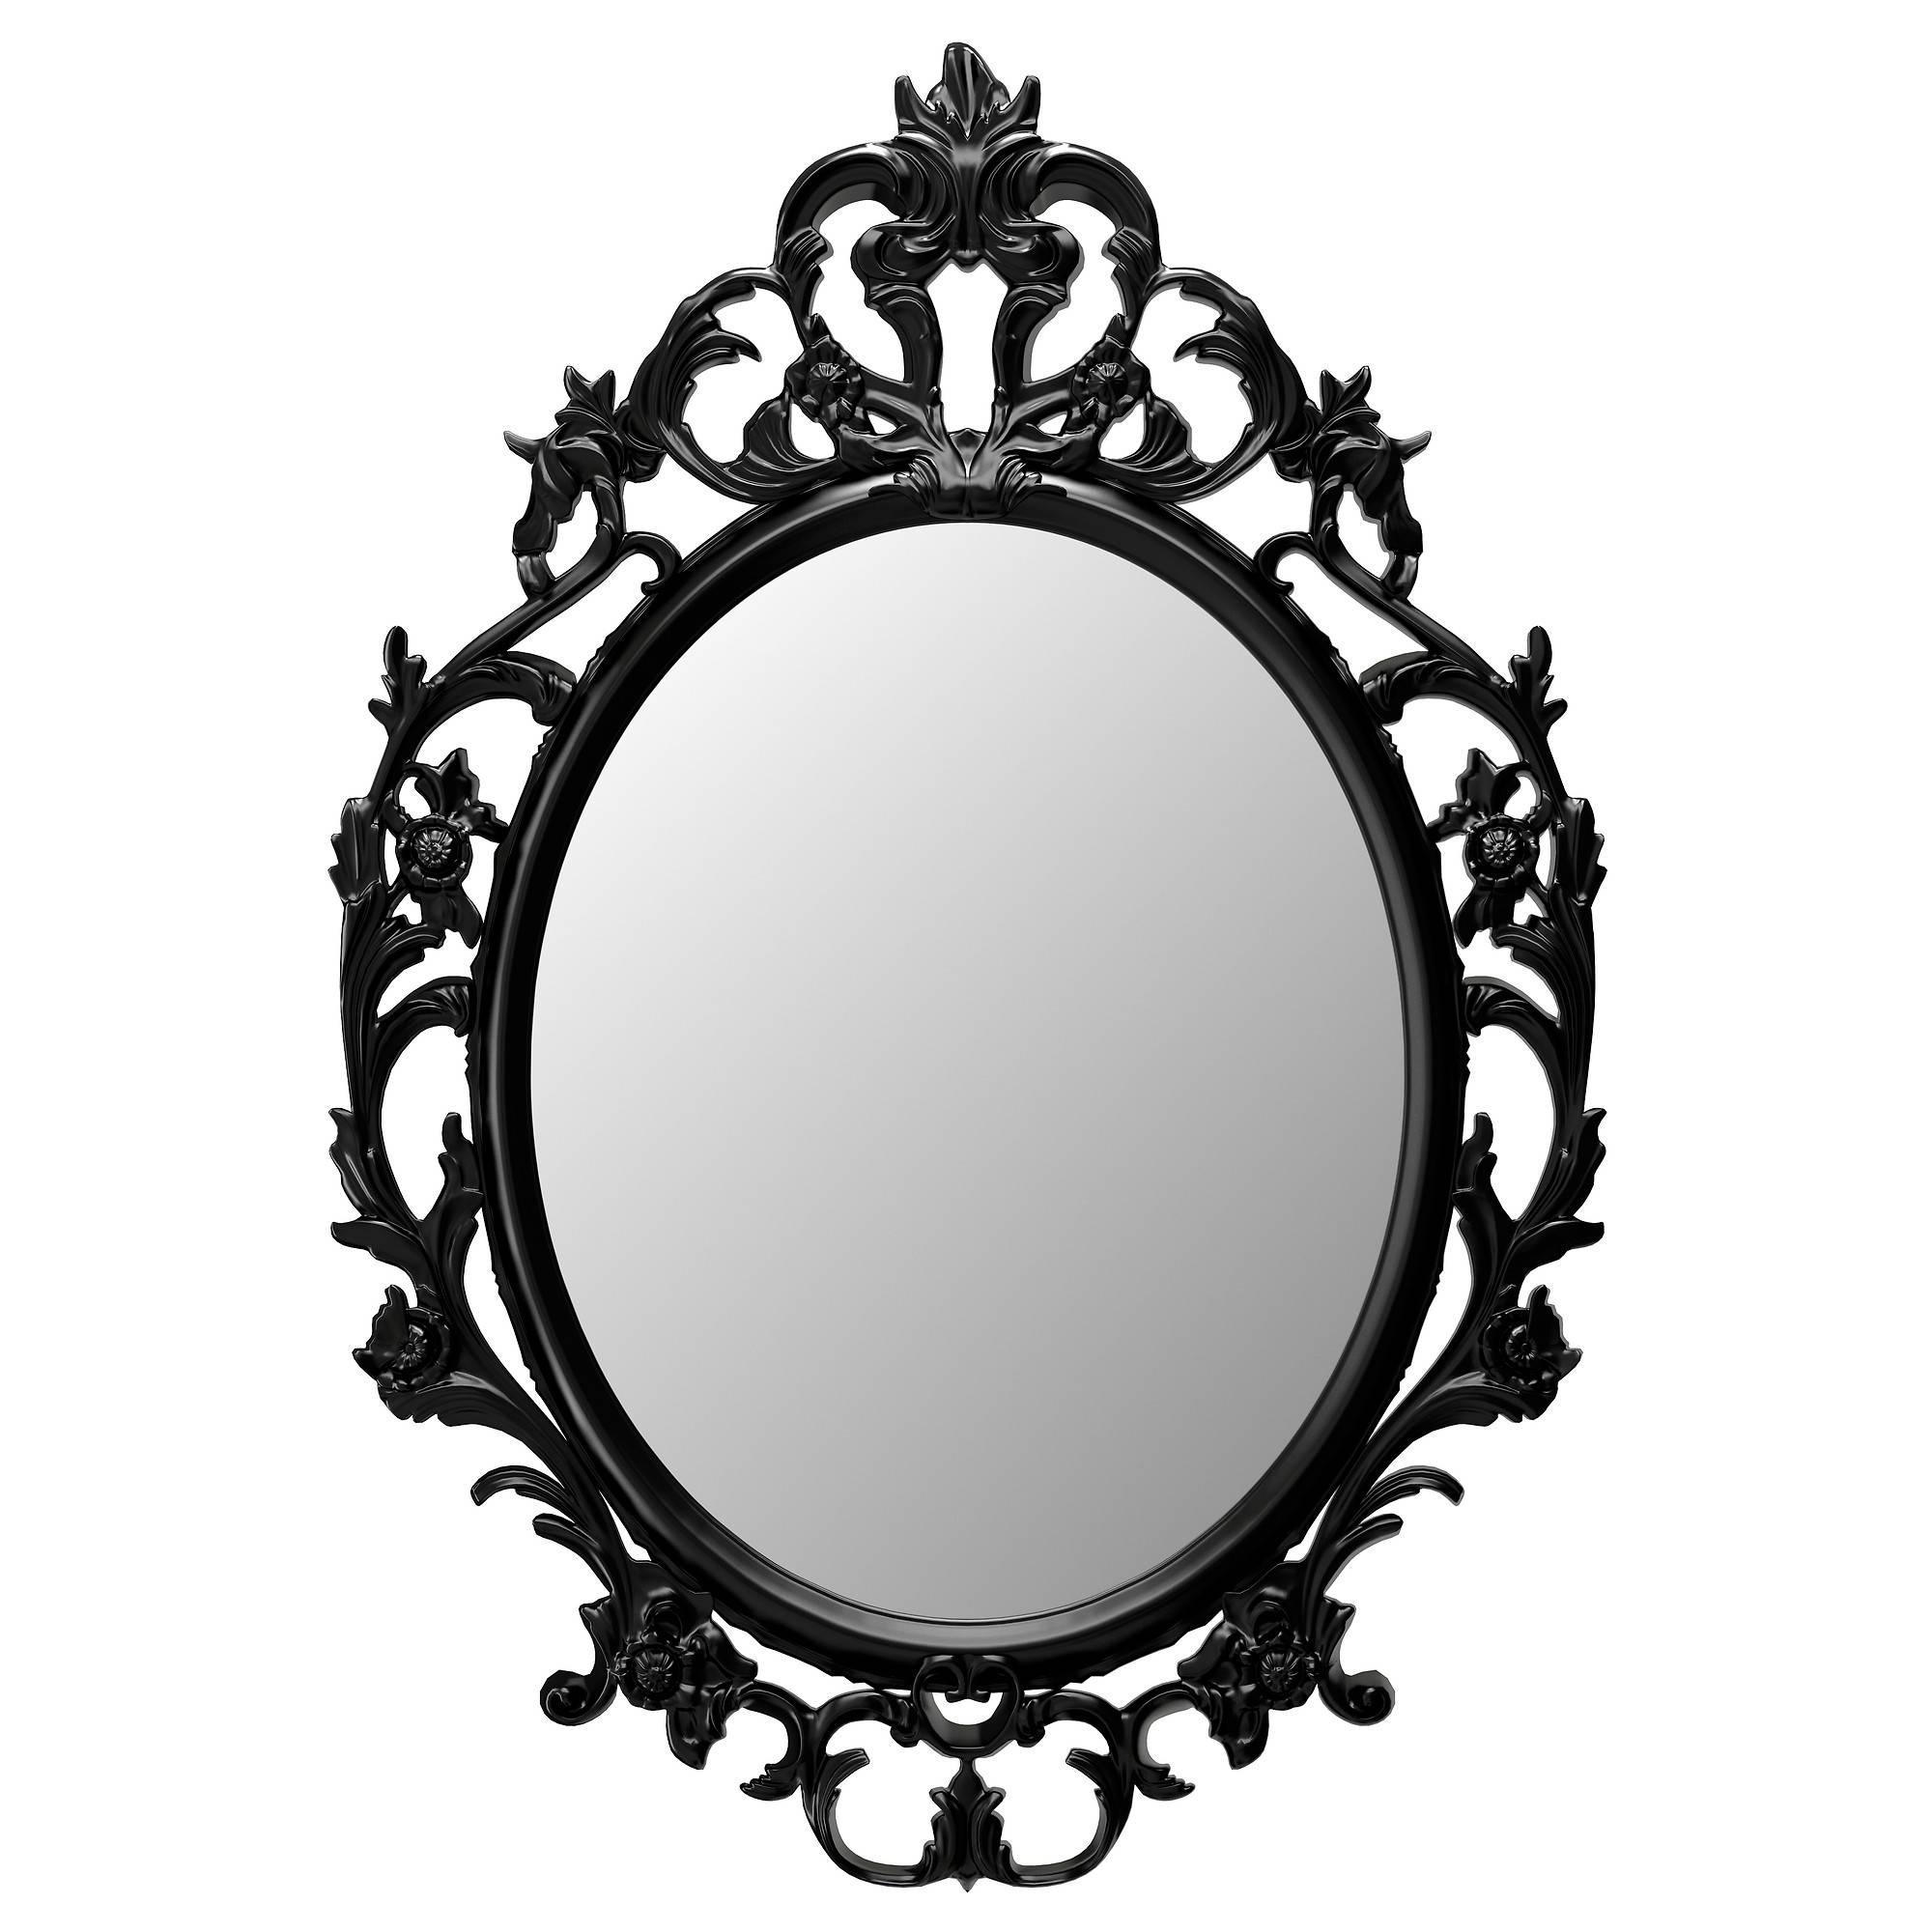 Bathroom: Astounding Baroque Mirror With Unique Frame For Bathroom within Modern Baroque Mirrors (Image 9 of 15)